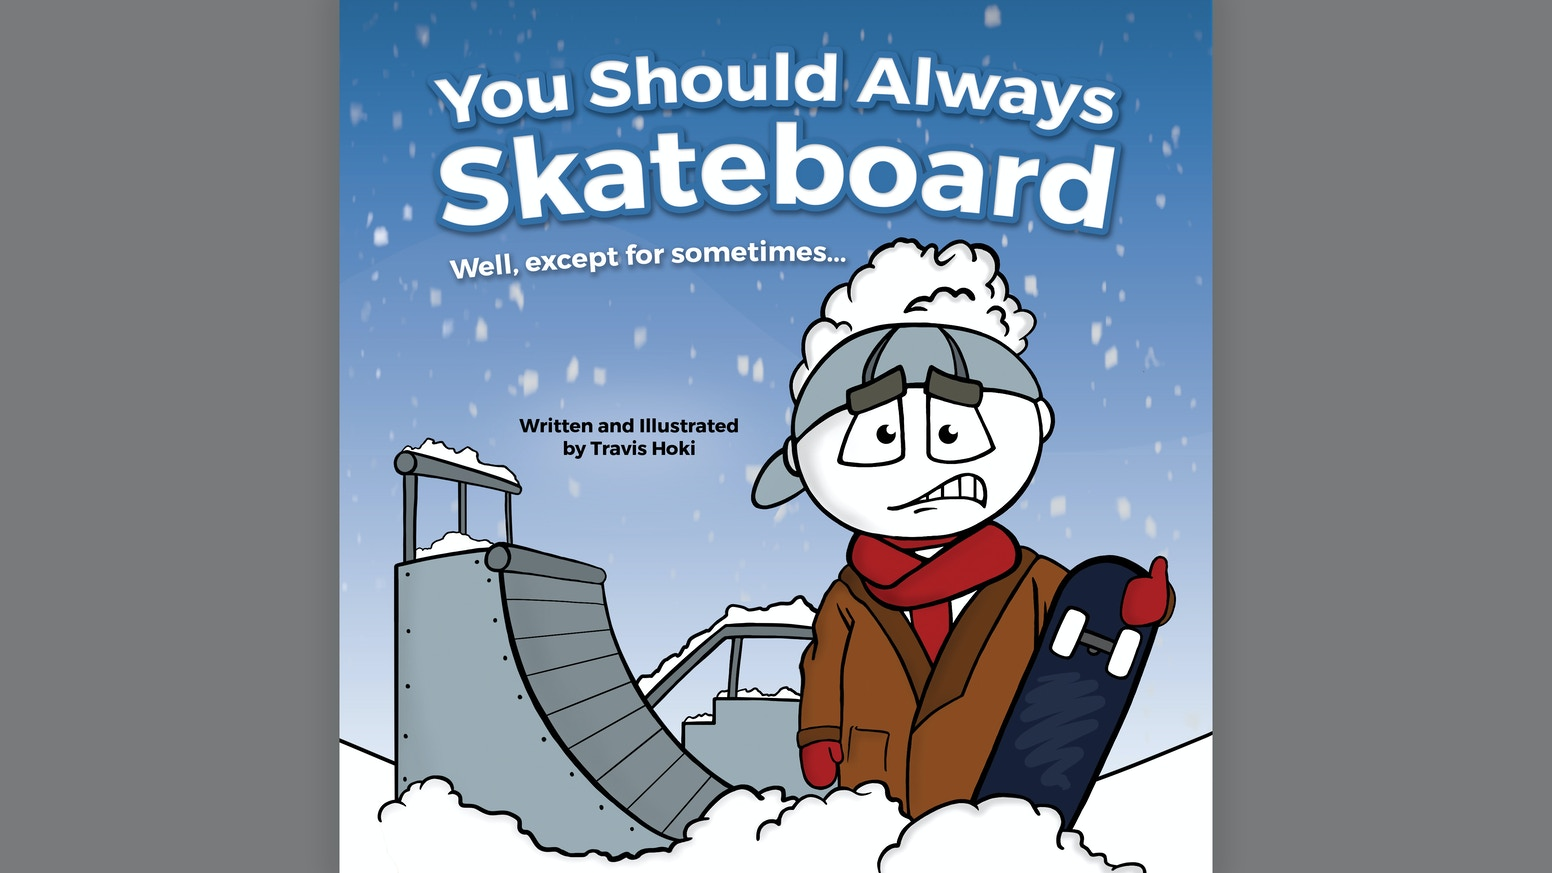 You should always skateboard! Well, except for sometimes…